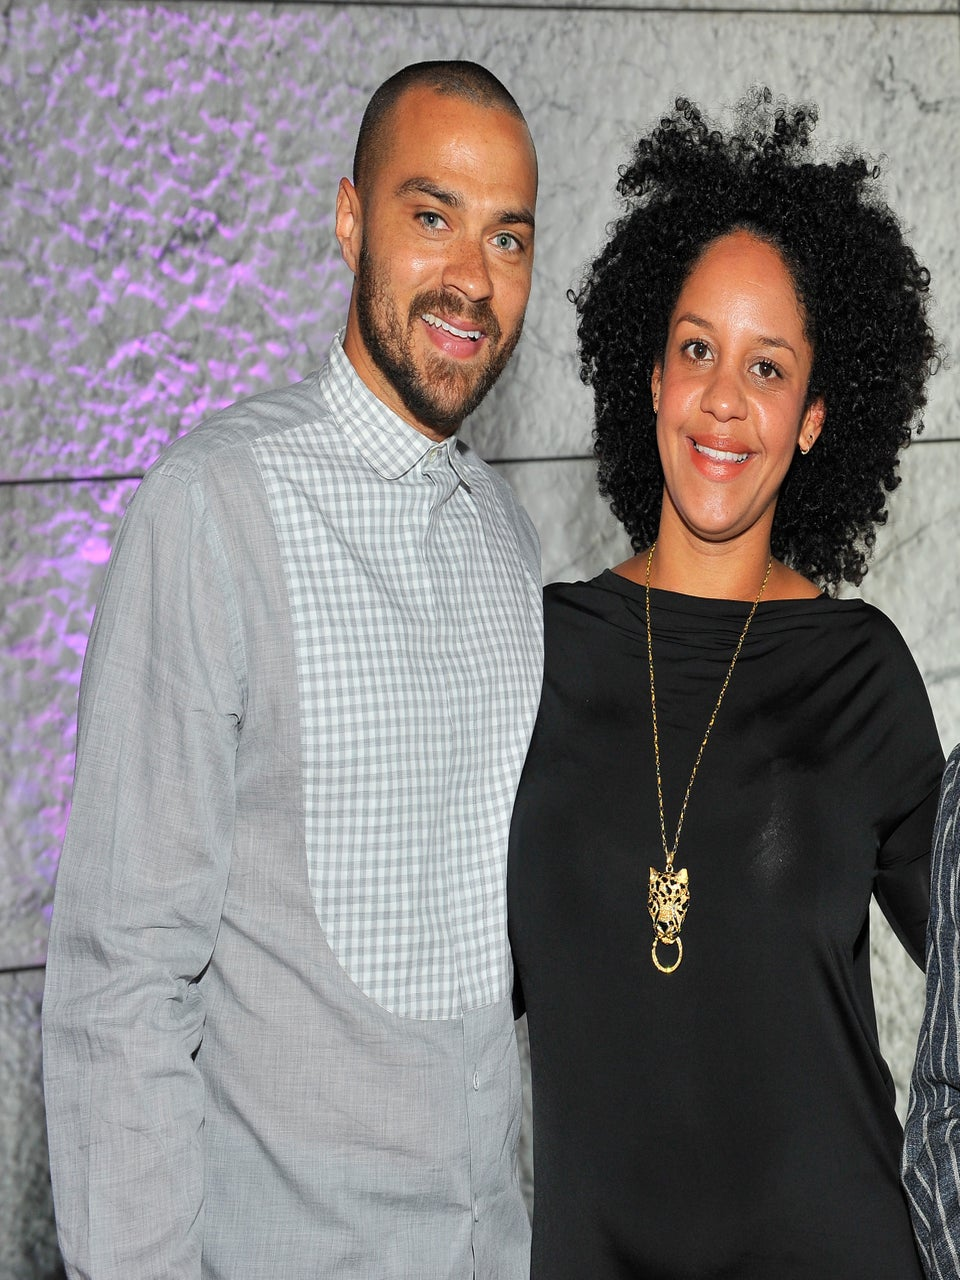 Jessie Williams's Ex-Wife, Aryn Drake-Lee, Speaks On Divorce, Finding A New Community and Resisting Fame